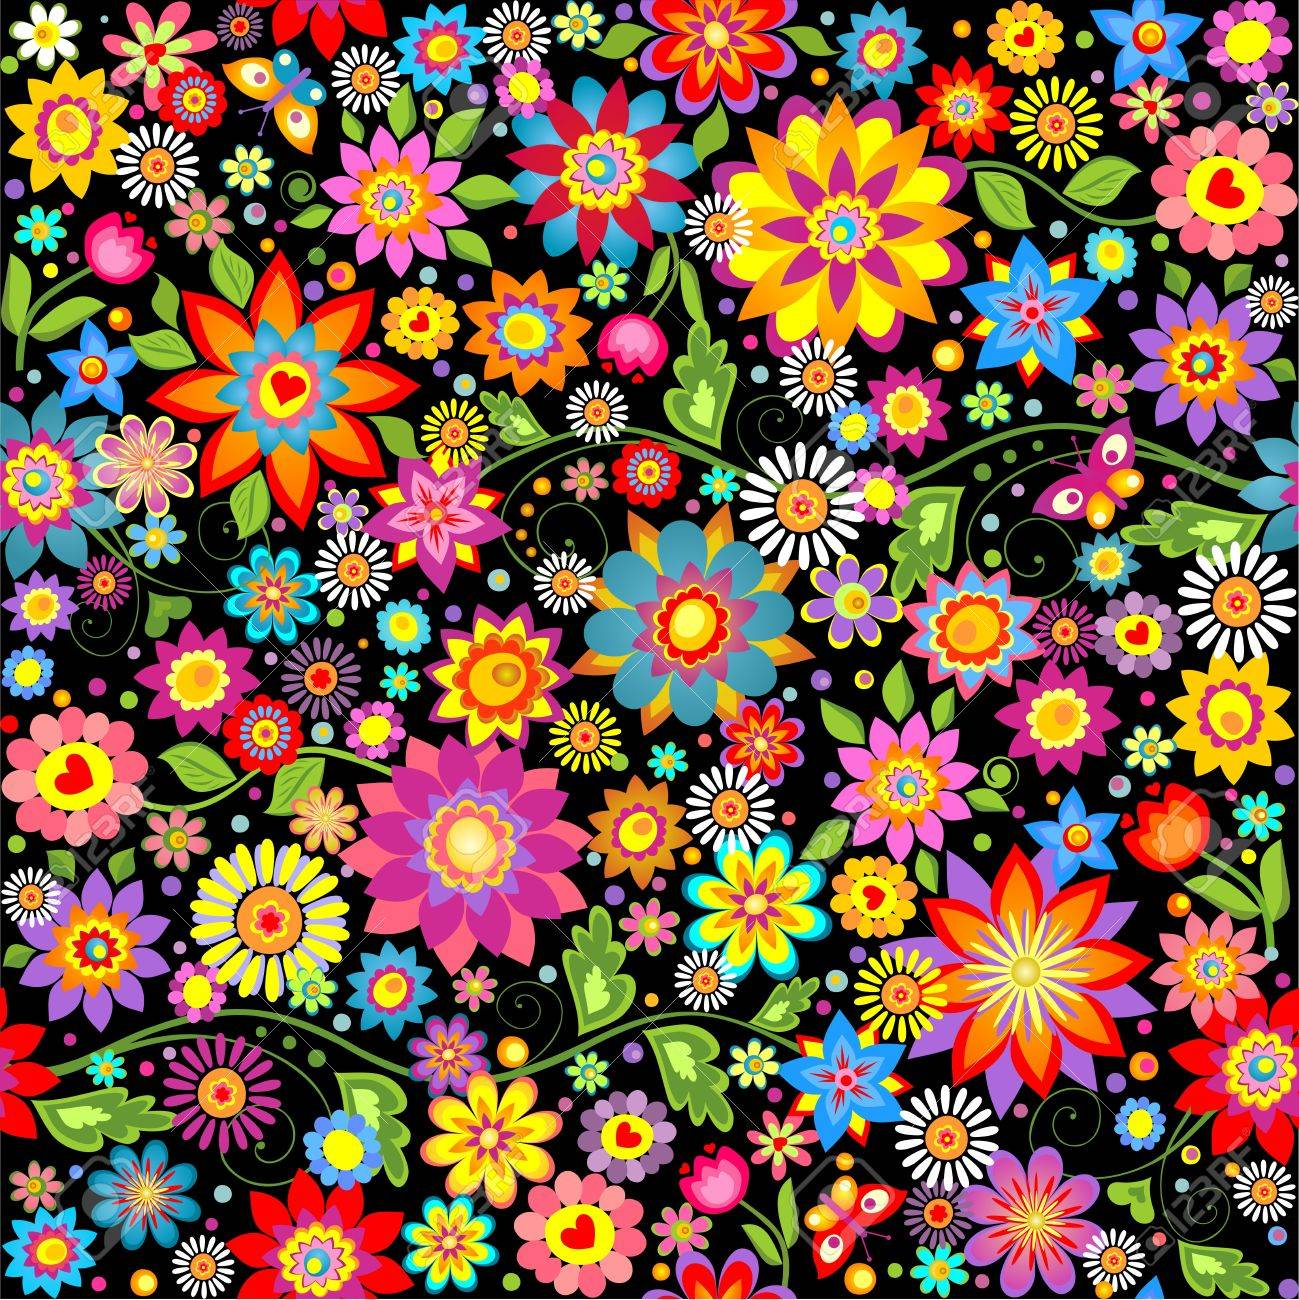 Wallpaper With Abstract Funny Colorful Flowers Royalty Free Cliparts Vectors And Stock Illustration Image